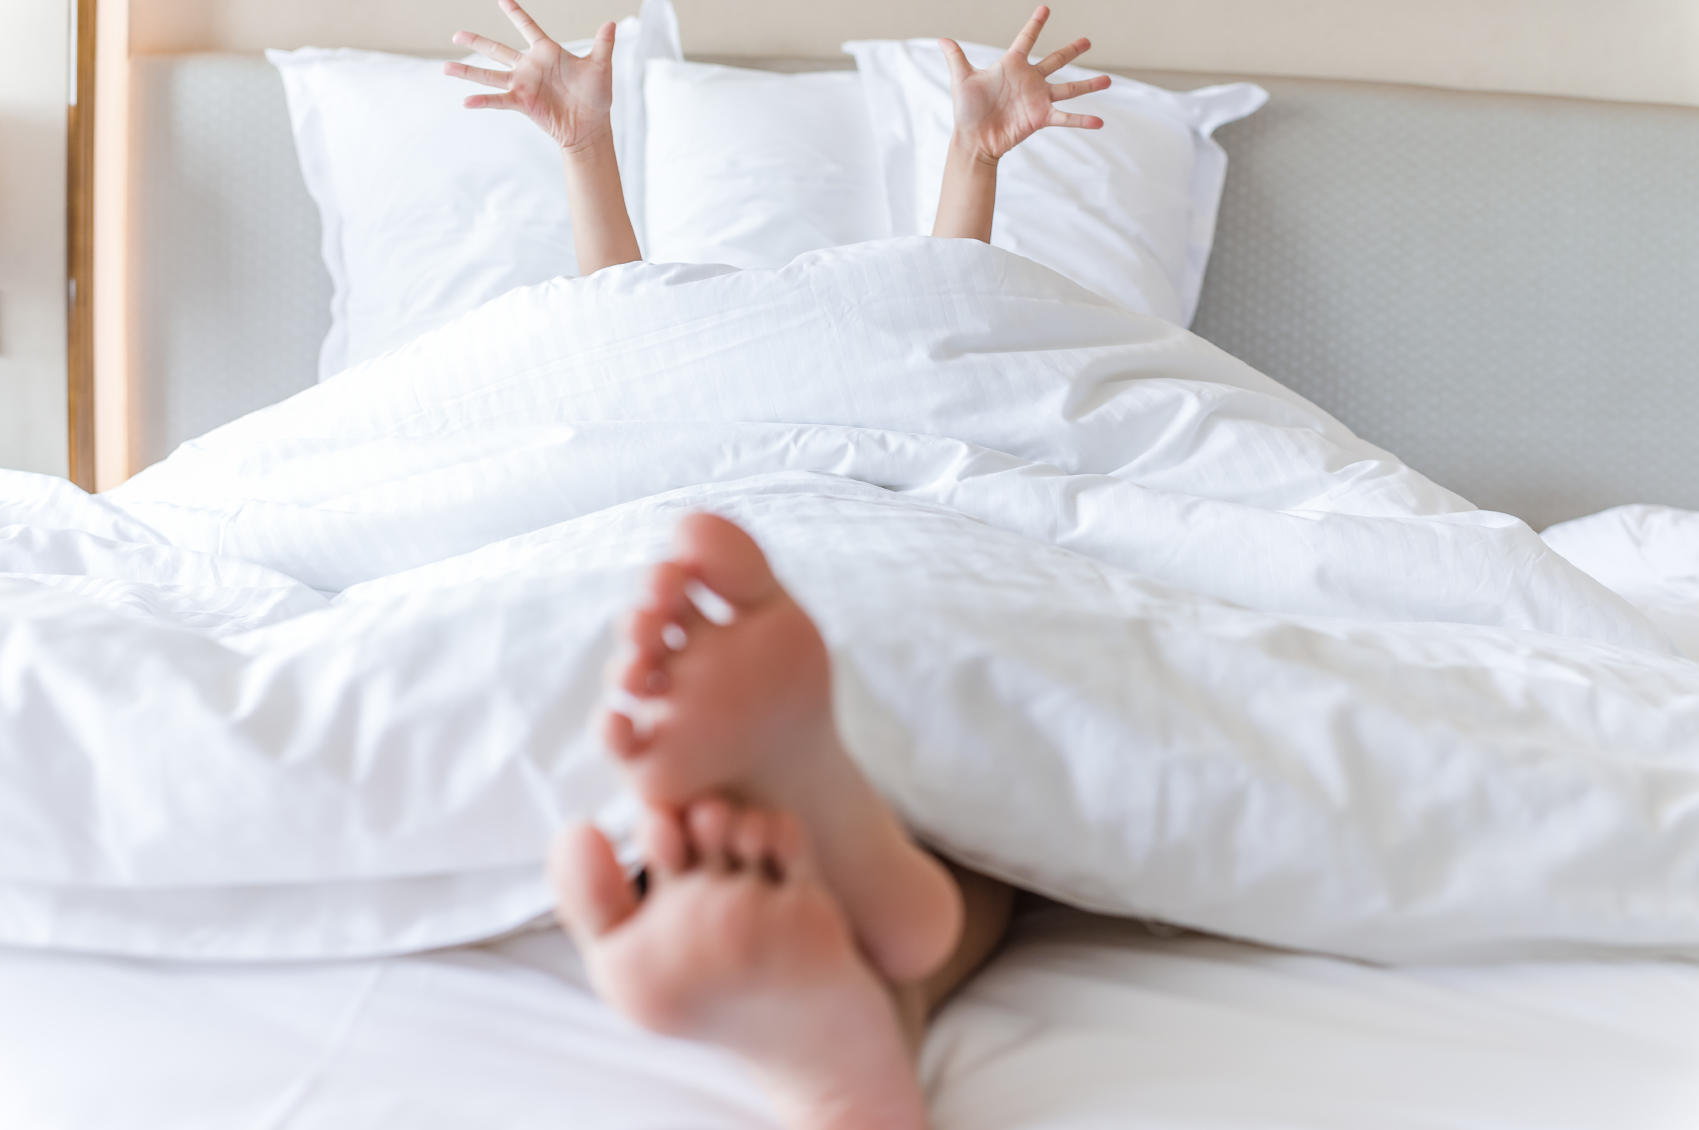 Person Sleeping on Bed Raising Hands